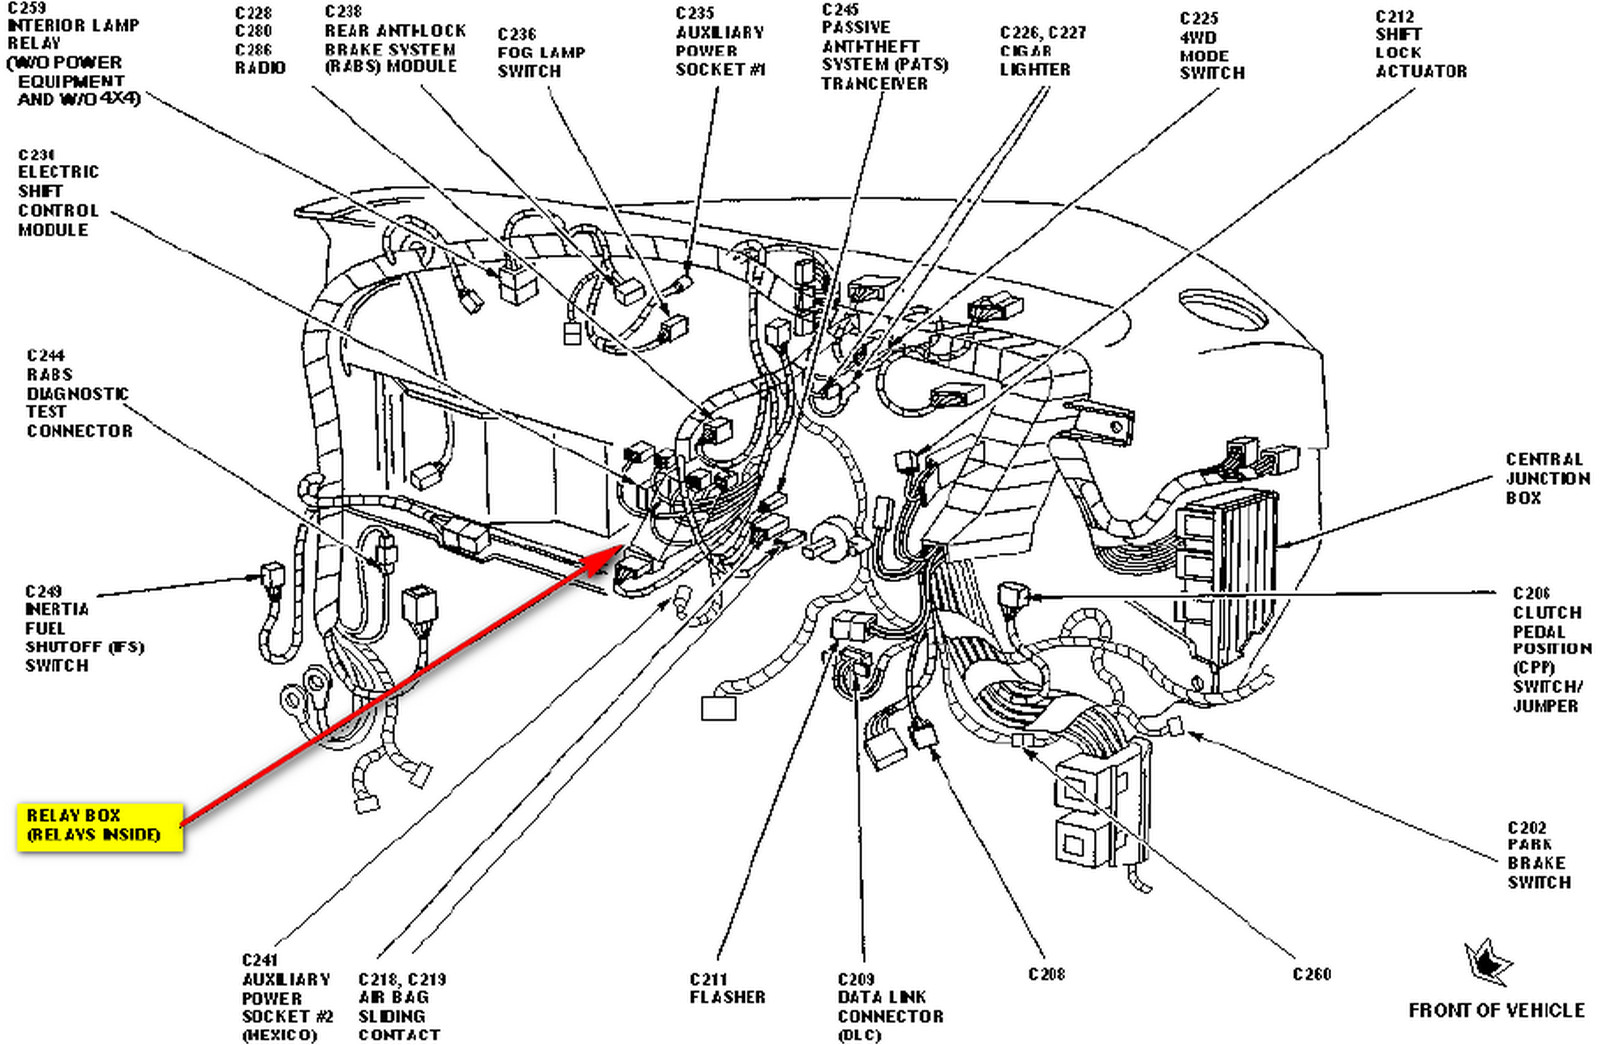 Ford Mustang Wiring Diagram Also Ford Explorer Power Window Regulator